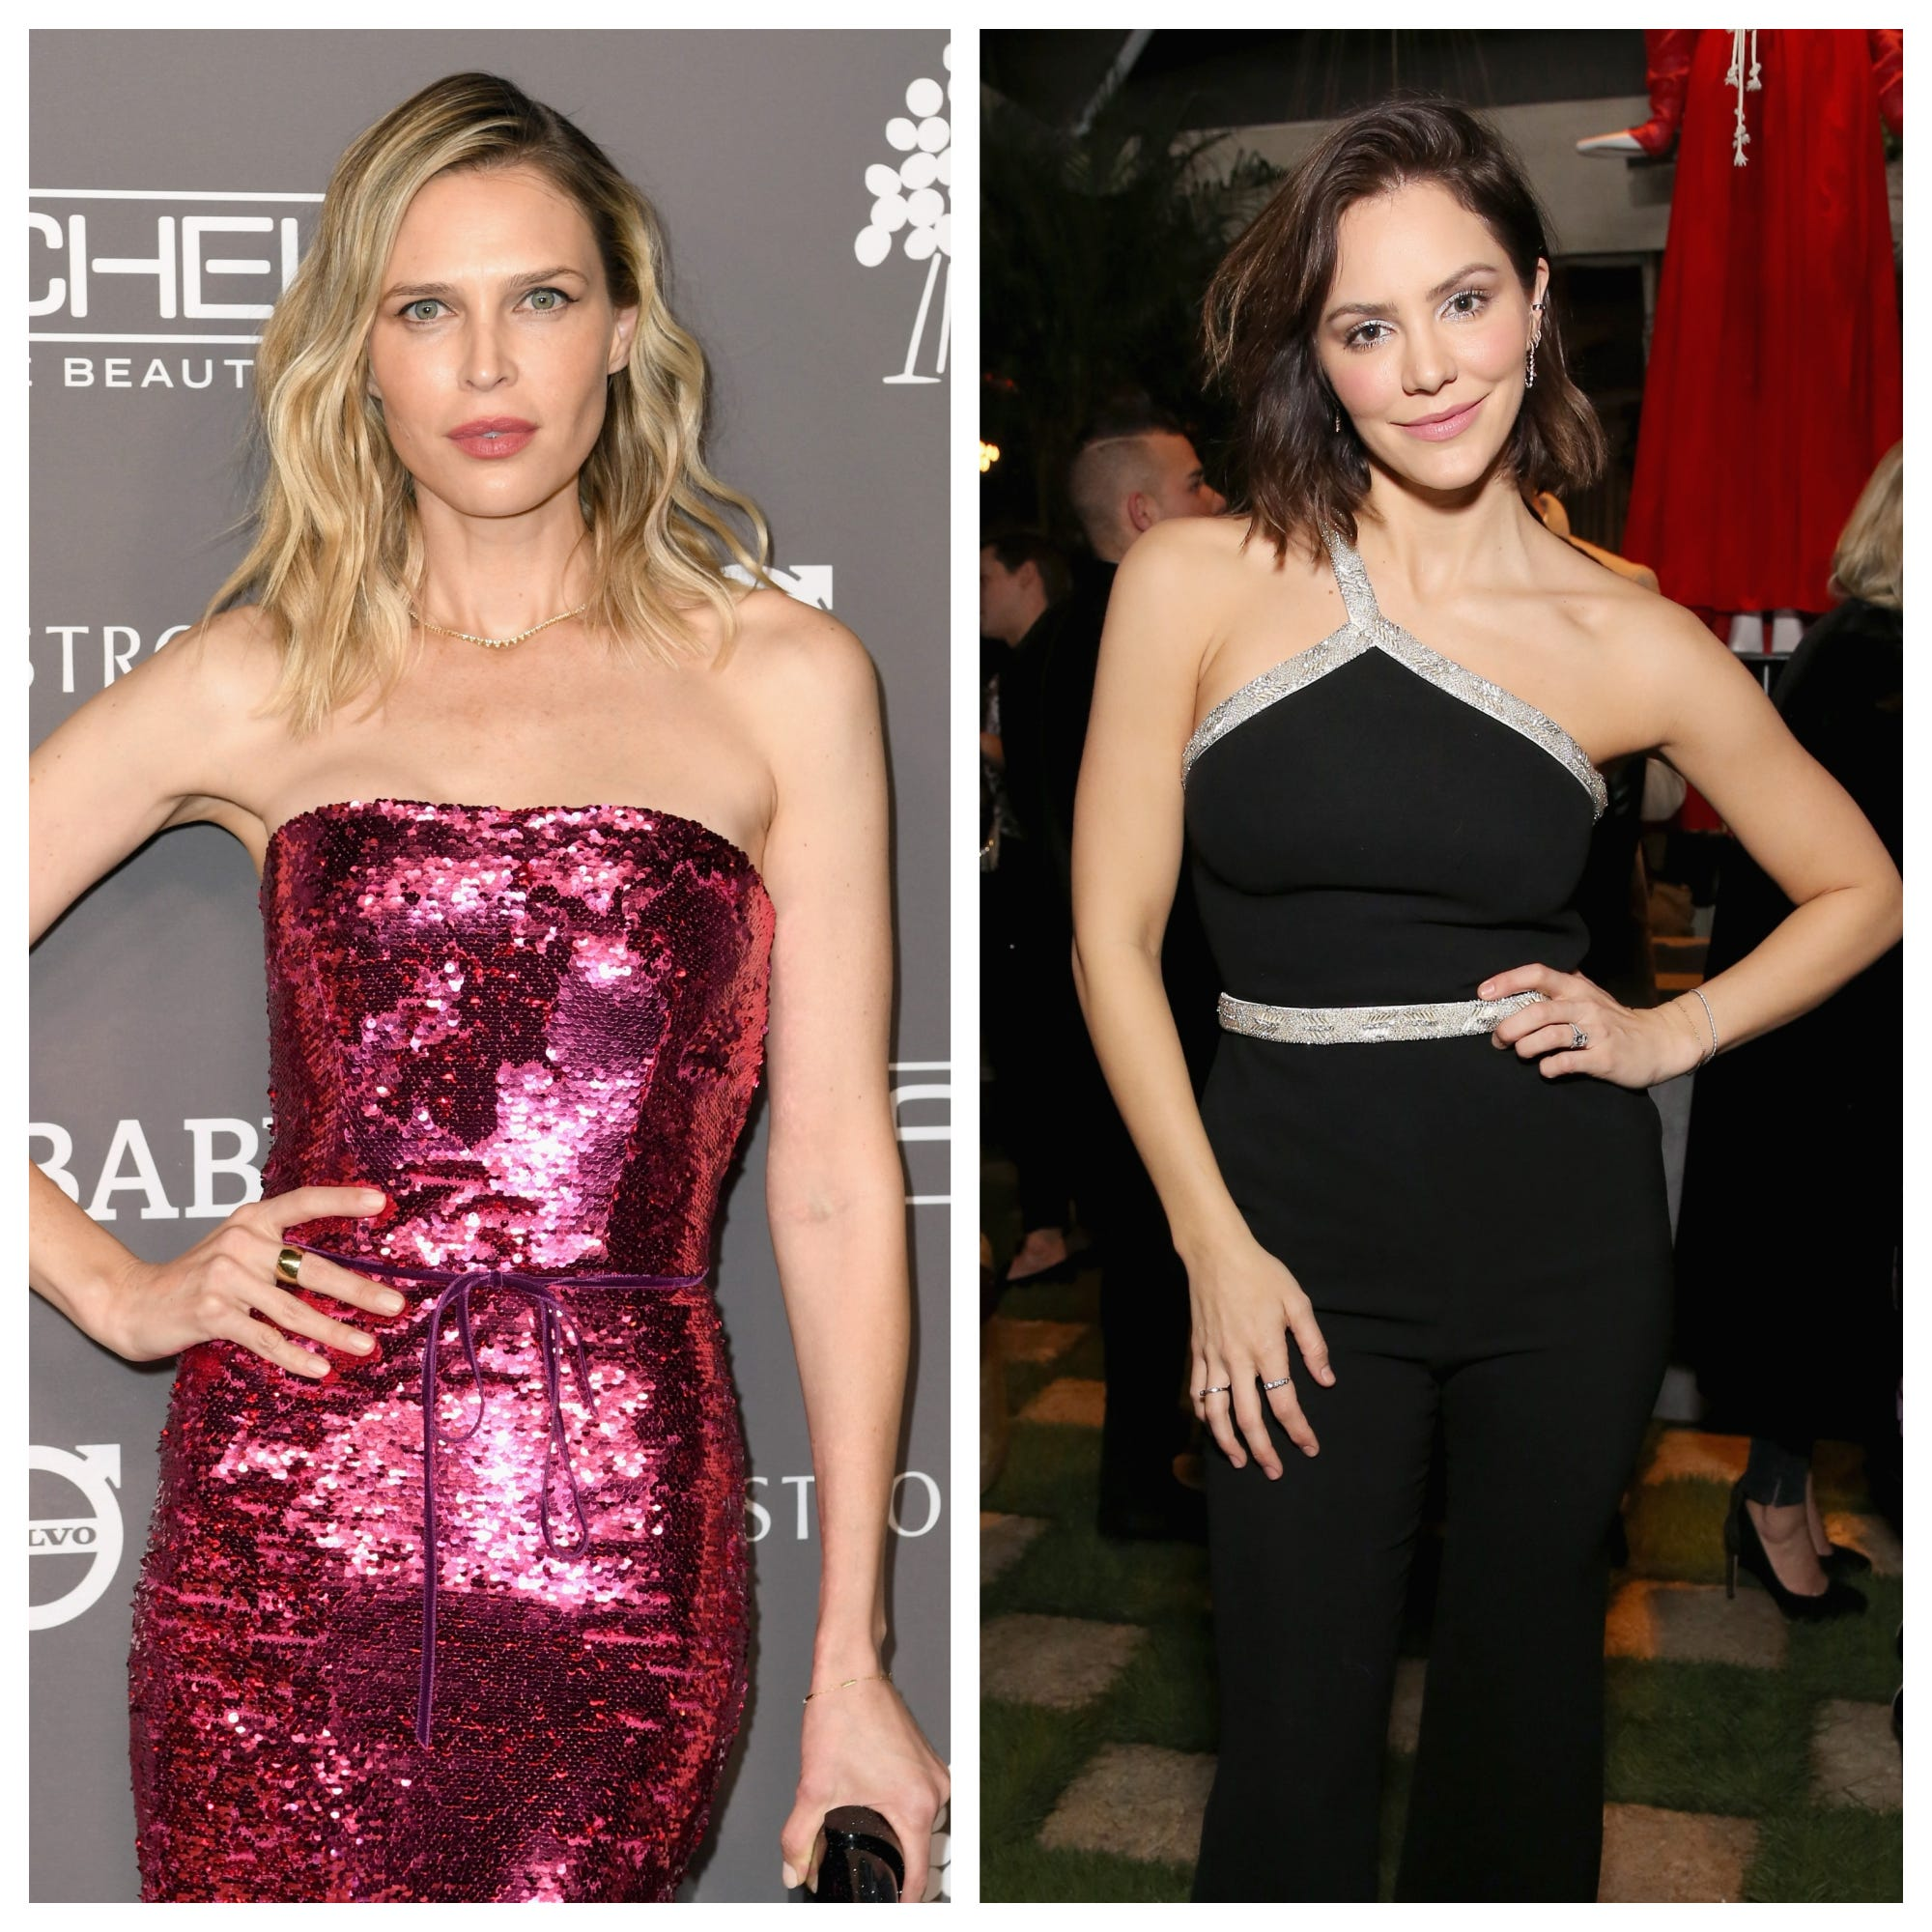 Sara Foster Teases Future Stepmom Katharine Mcphee Over Bikini Photo